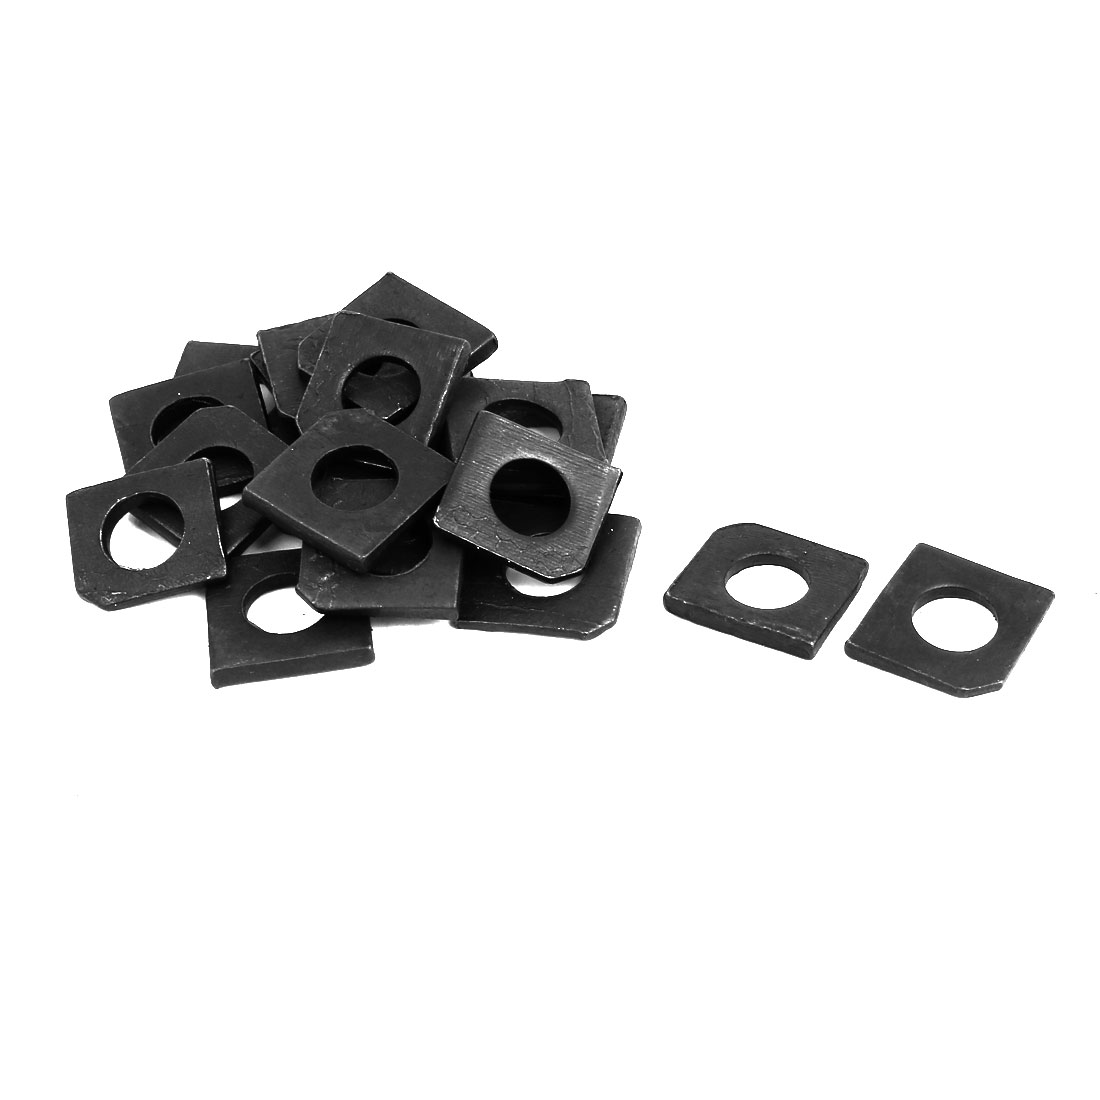 10mm Fitting Dia Carbon Steel Slot Section Square Bevel Washer 20pcs